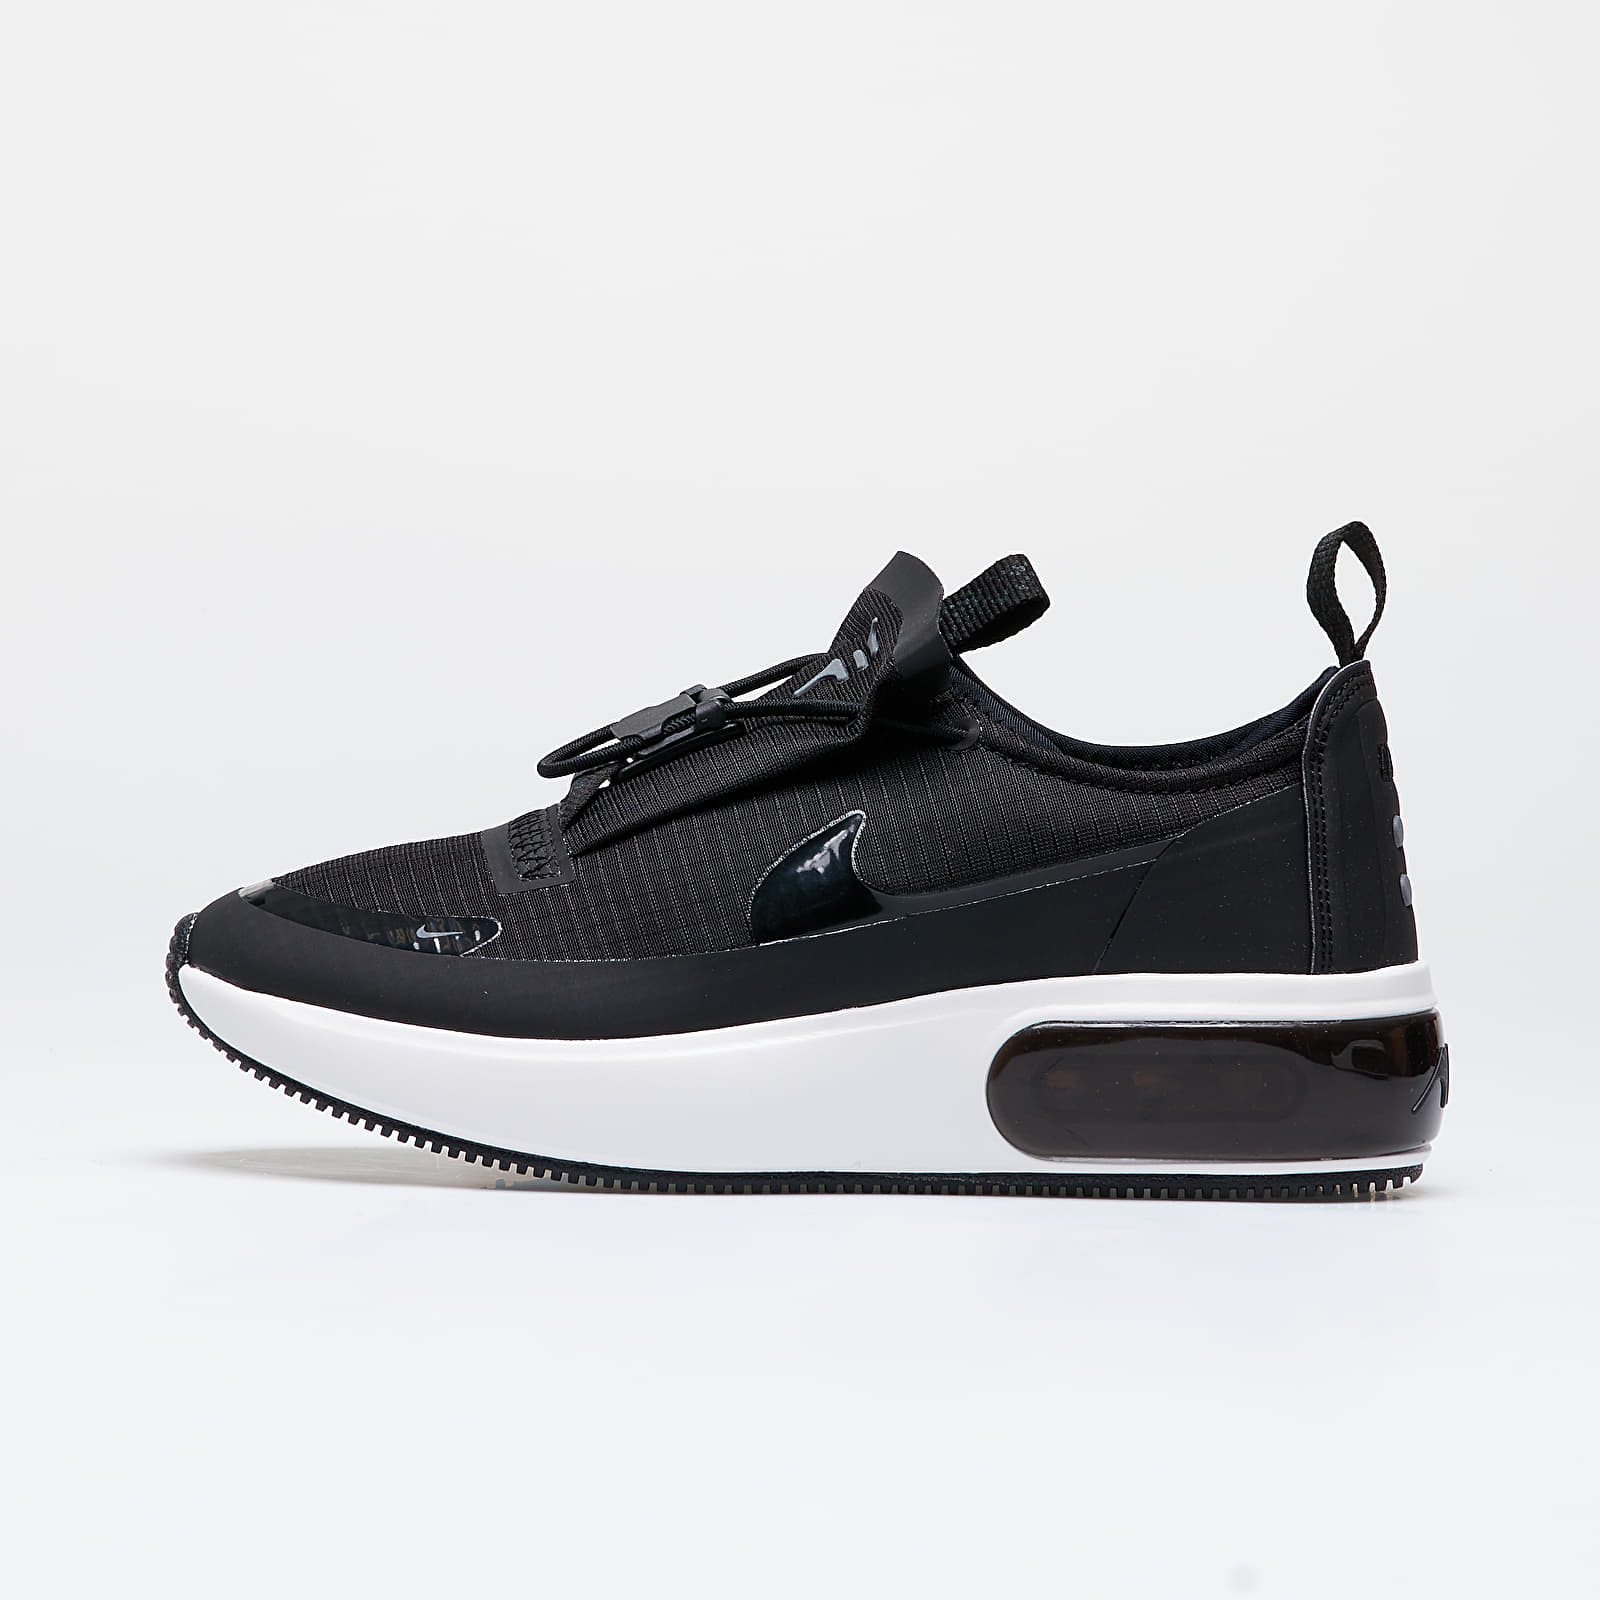 Women's shoes Nike W Air Max Dia Winter Black/ Black-Anthracite-Summit White